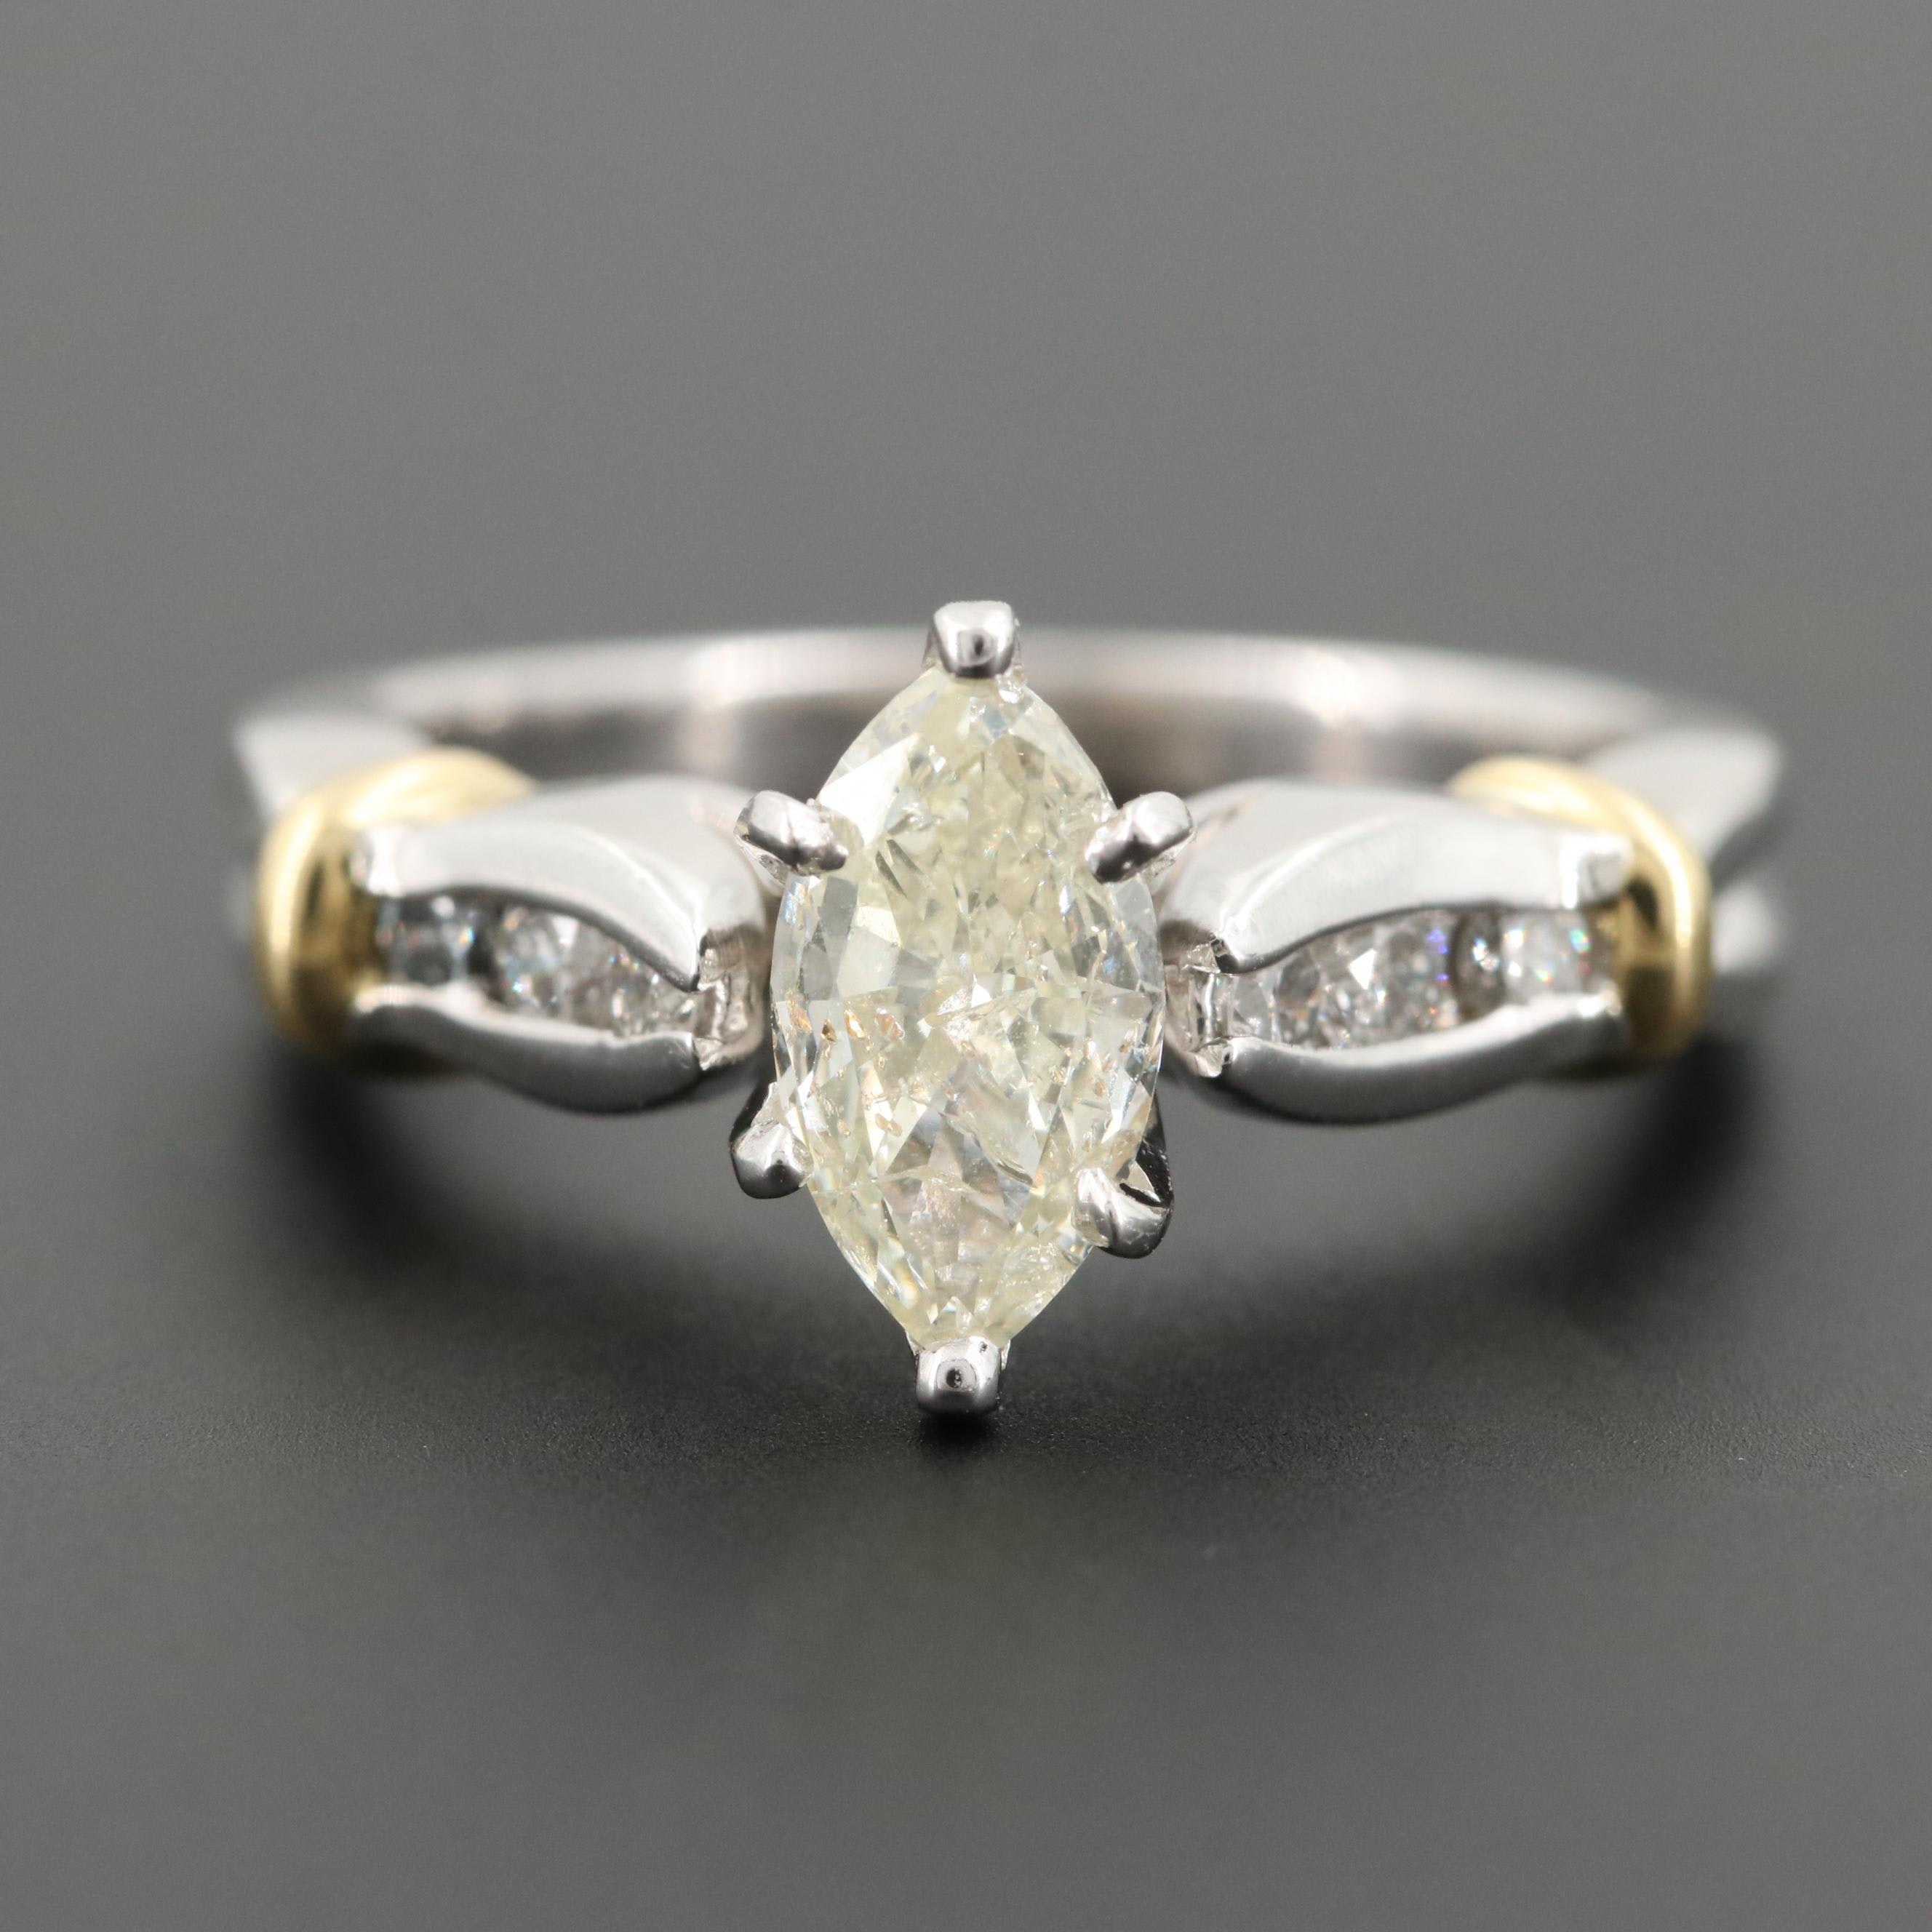 Platinum Diamond Ring with 18K Yellow Gold Accents